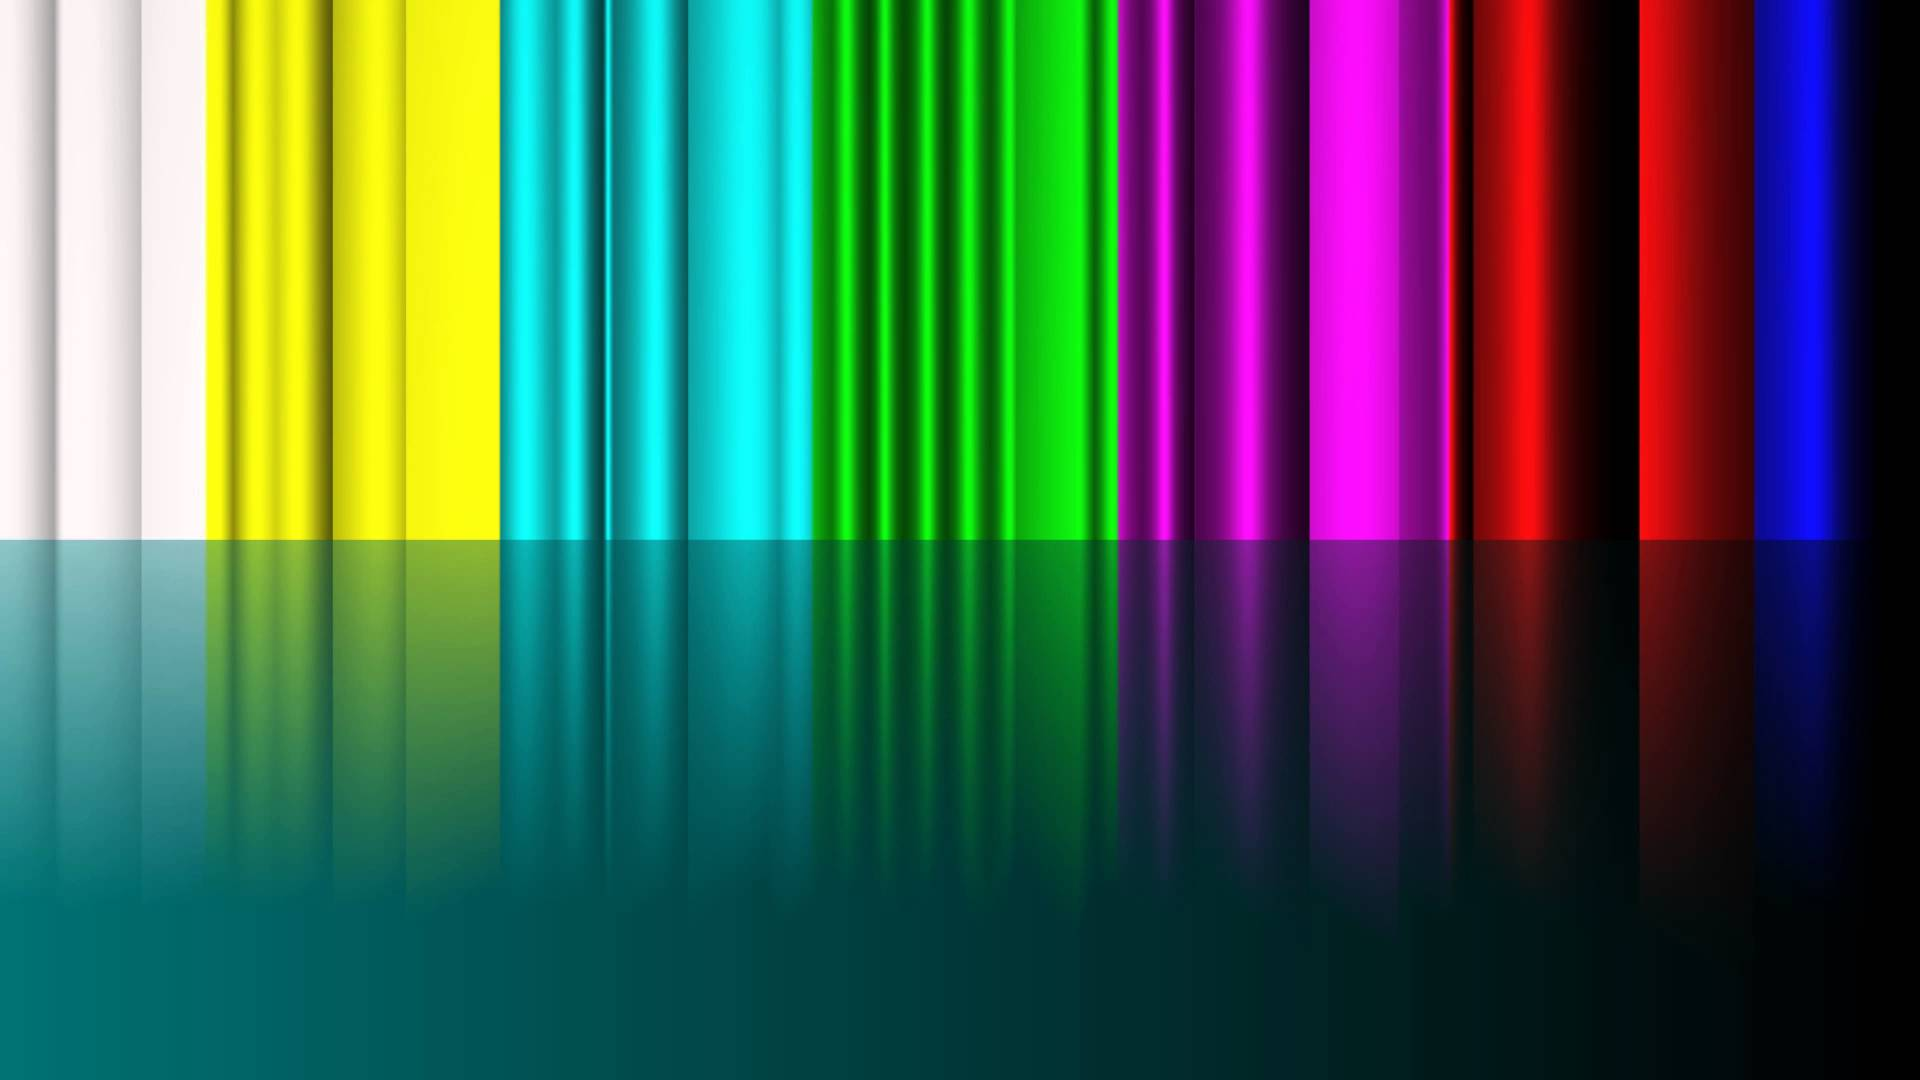 Colourful Wallpapers Hd For Android Download Tv Color Bars Wallpaper Gallery